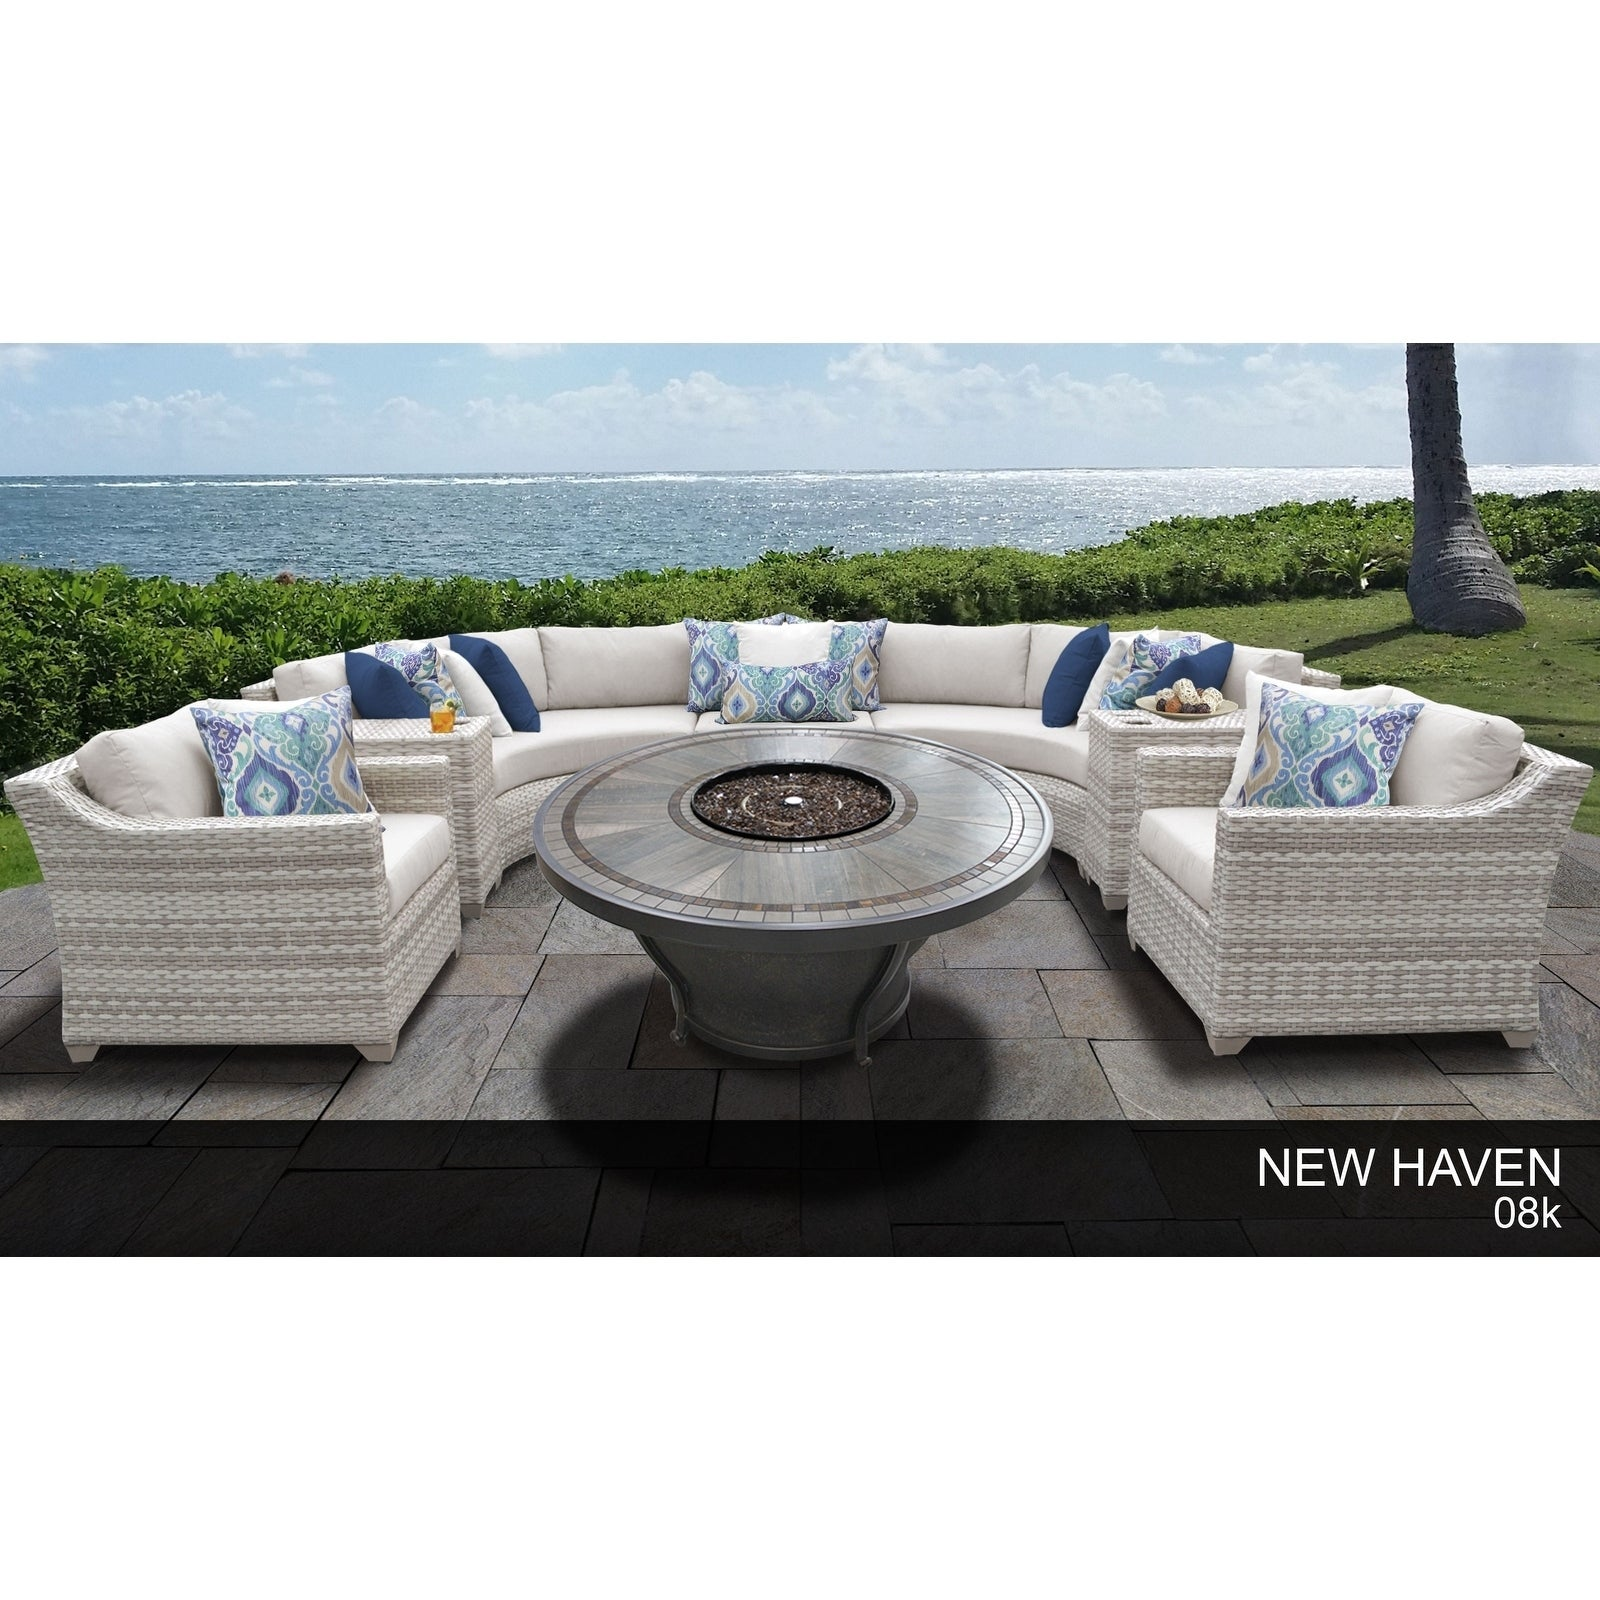 Fairmont Patio Furniture.Details About Fairmont 8 Piece Outdoor Wicker Patio Furniture Set 08k